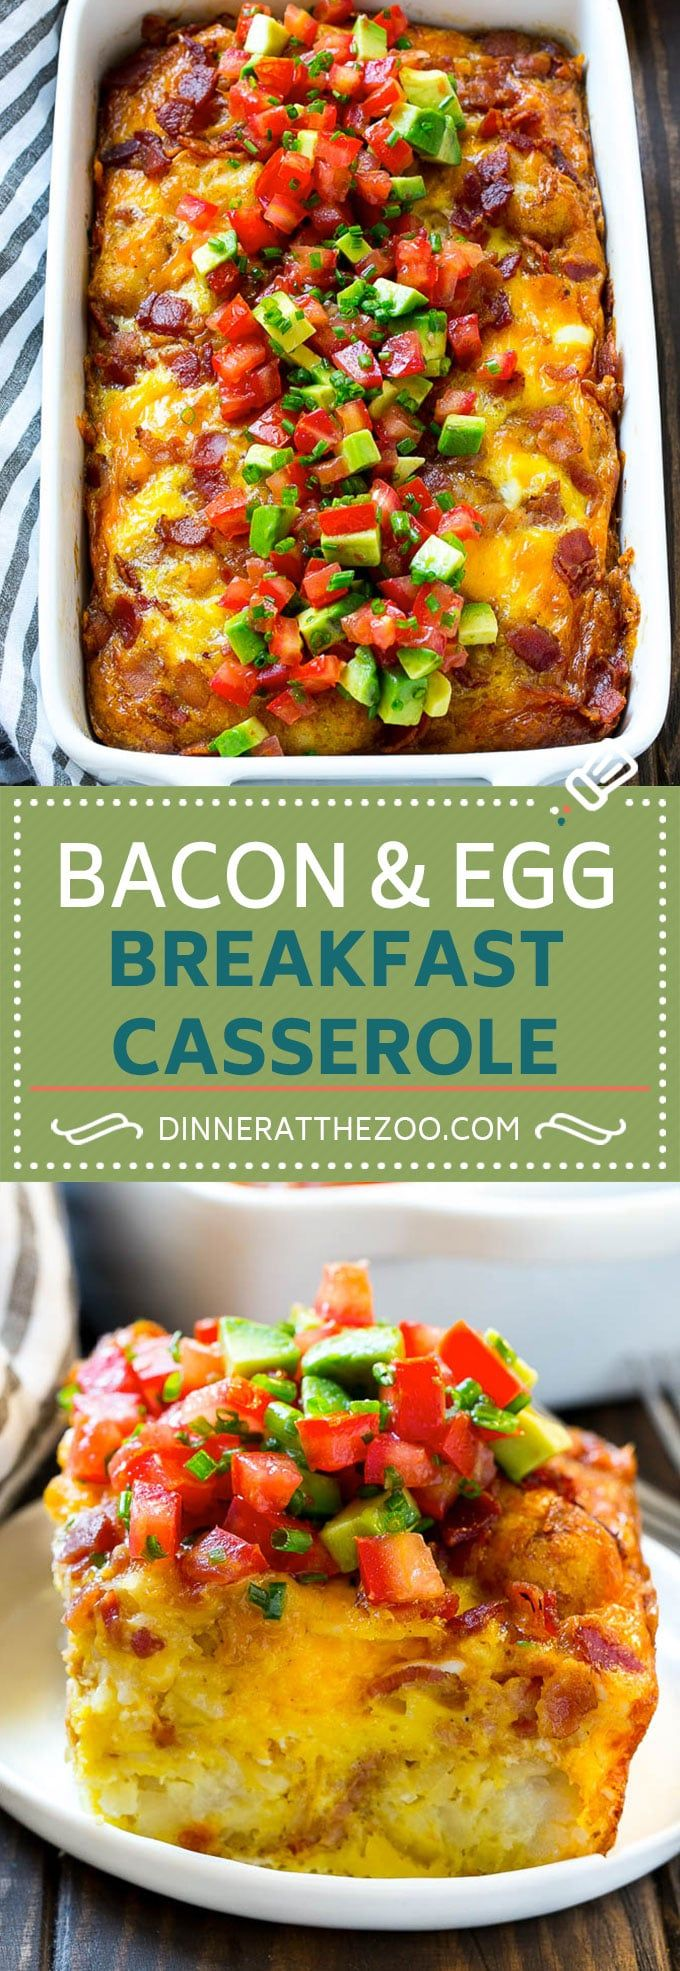 Breakfast Casserole with Bacon Recipe